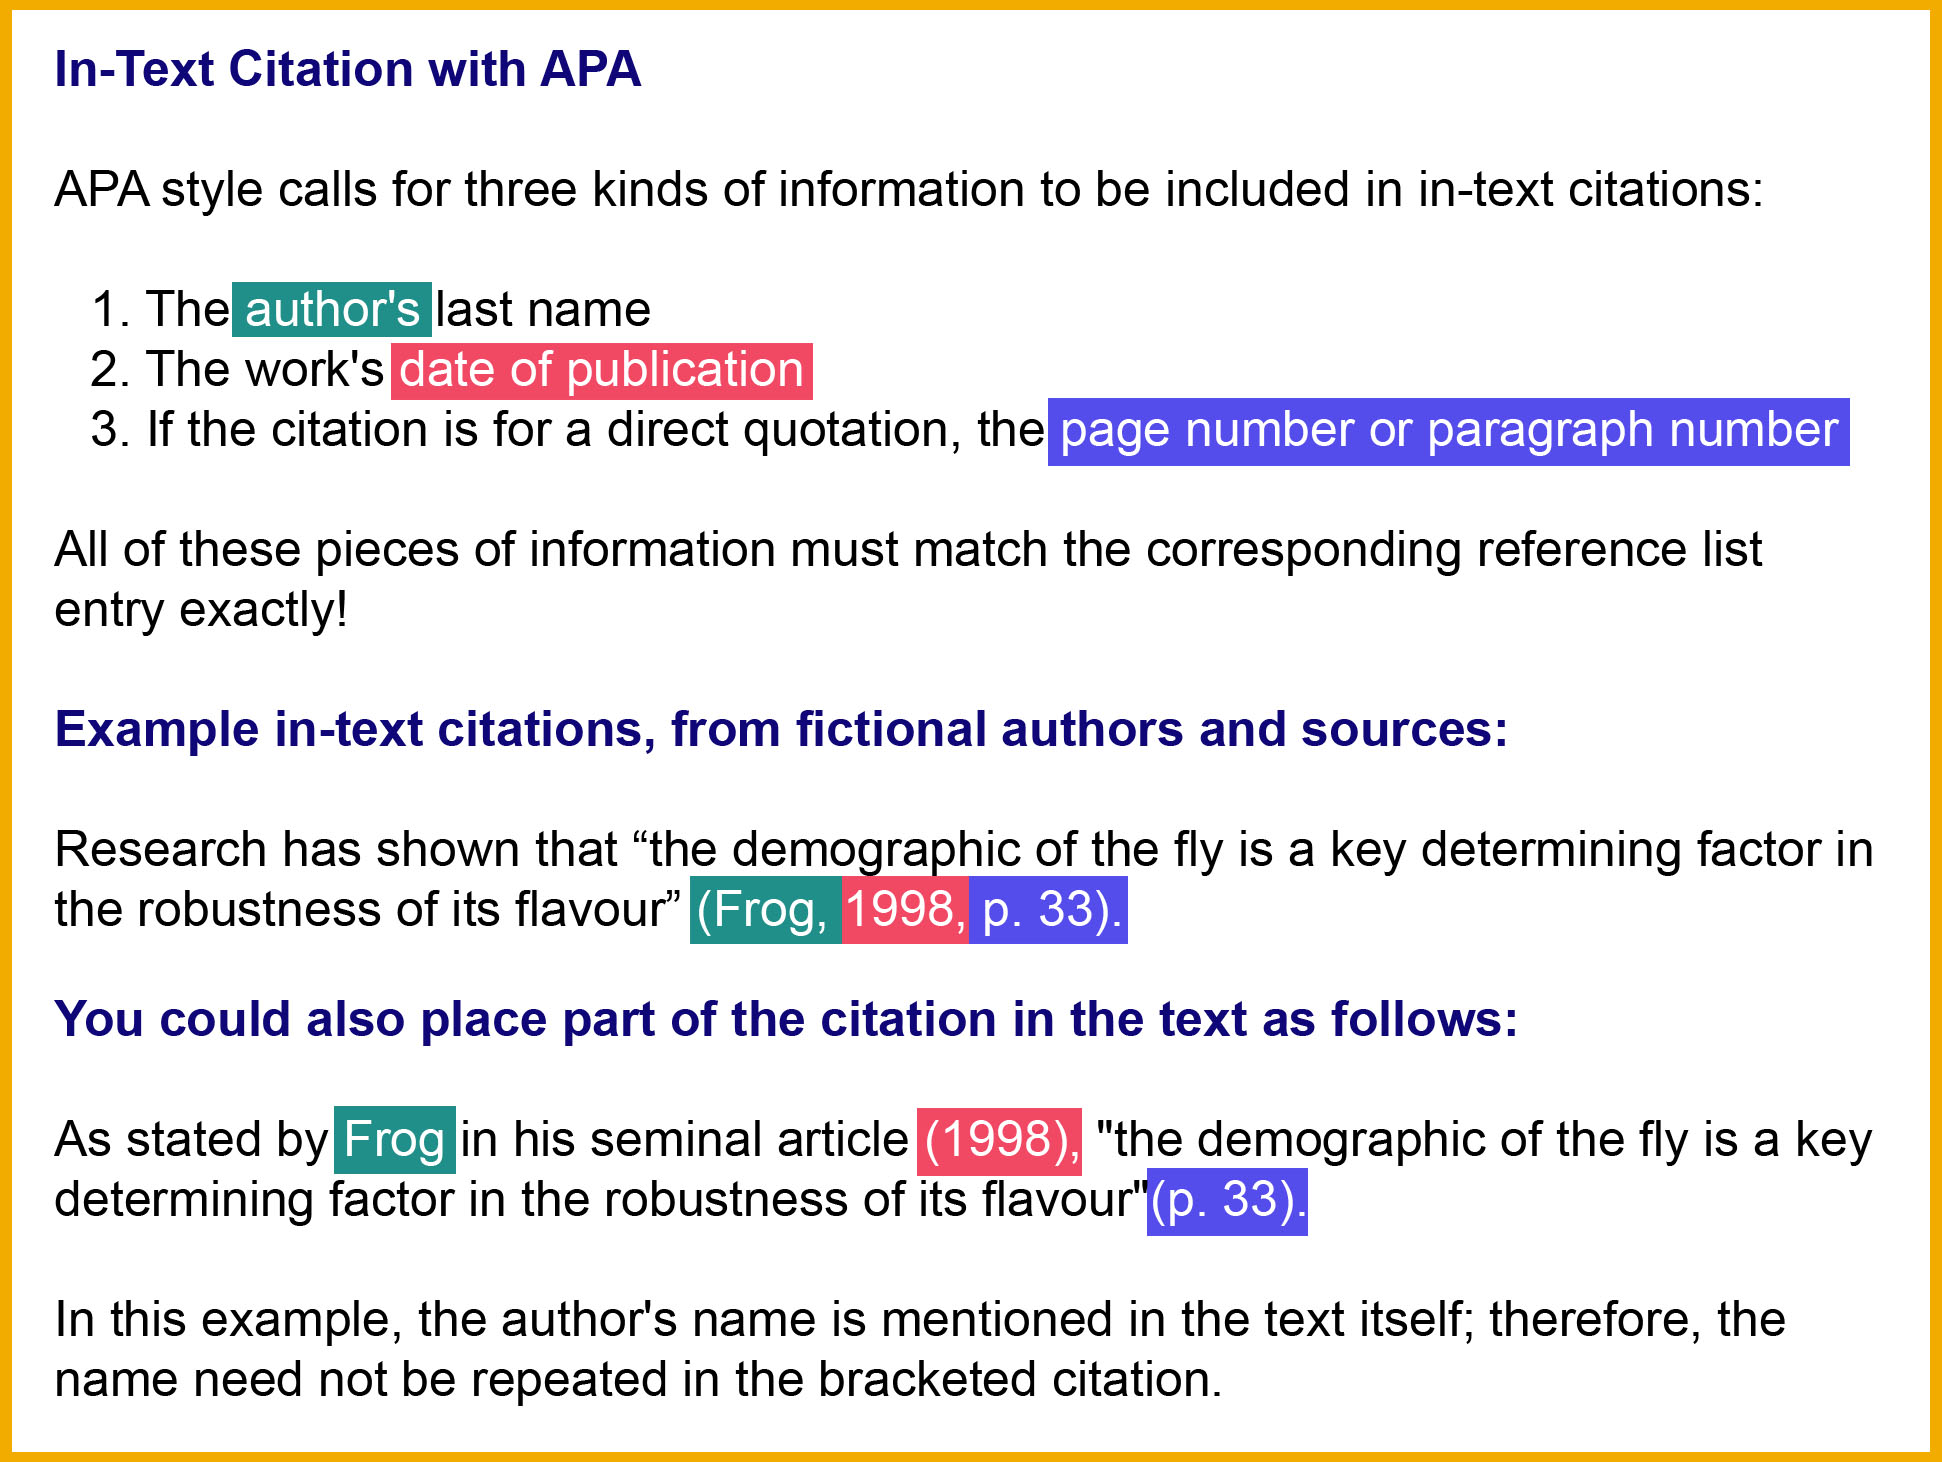 apa guide A list of citation style guides learn how to reference your sources using the apa styles create your citations, reference lists and bibliographies automatically using the apa, mla, chicago, or harvard referencing styles.